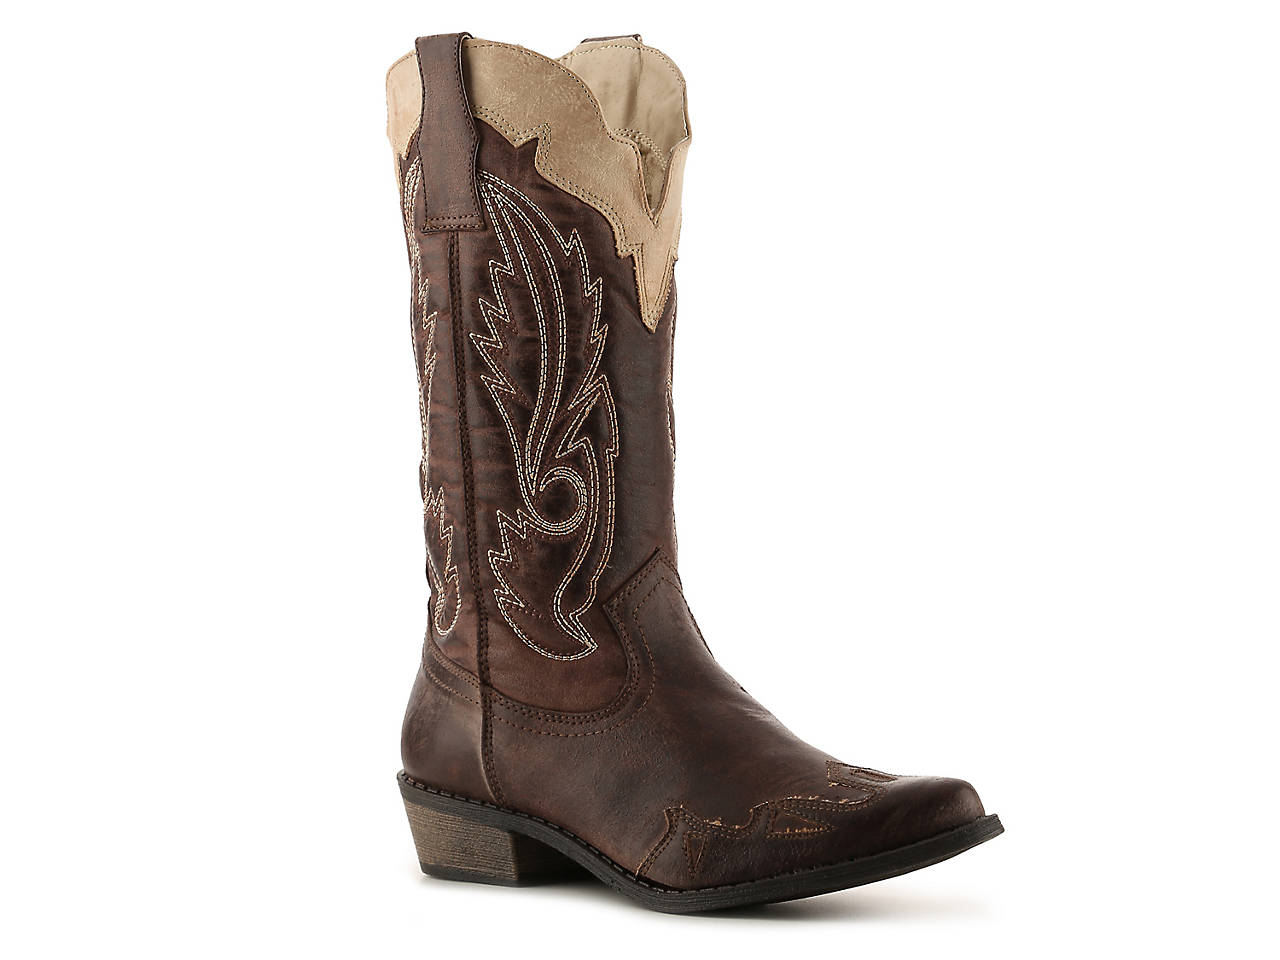 Cowboy pictures of boots